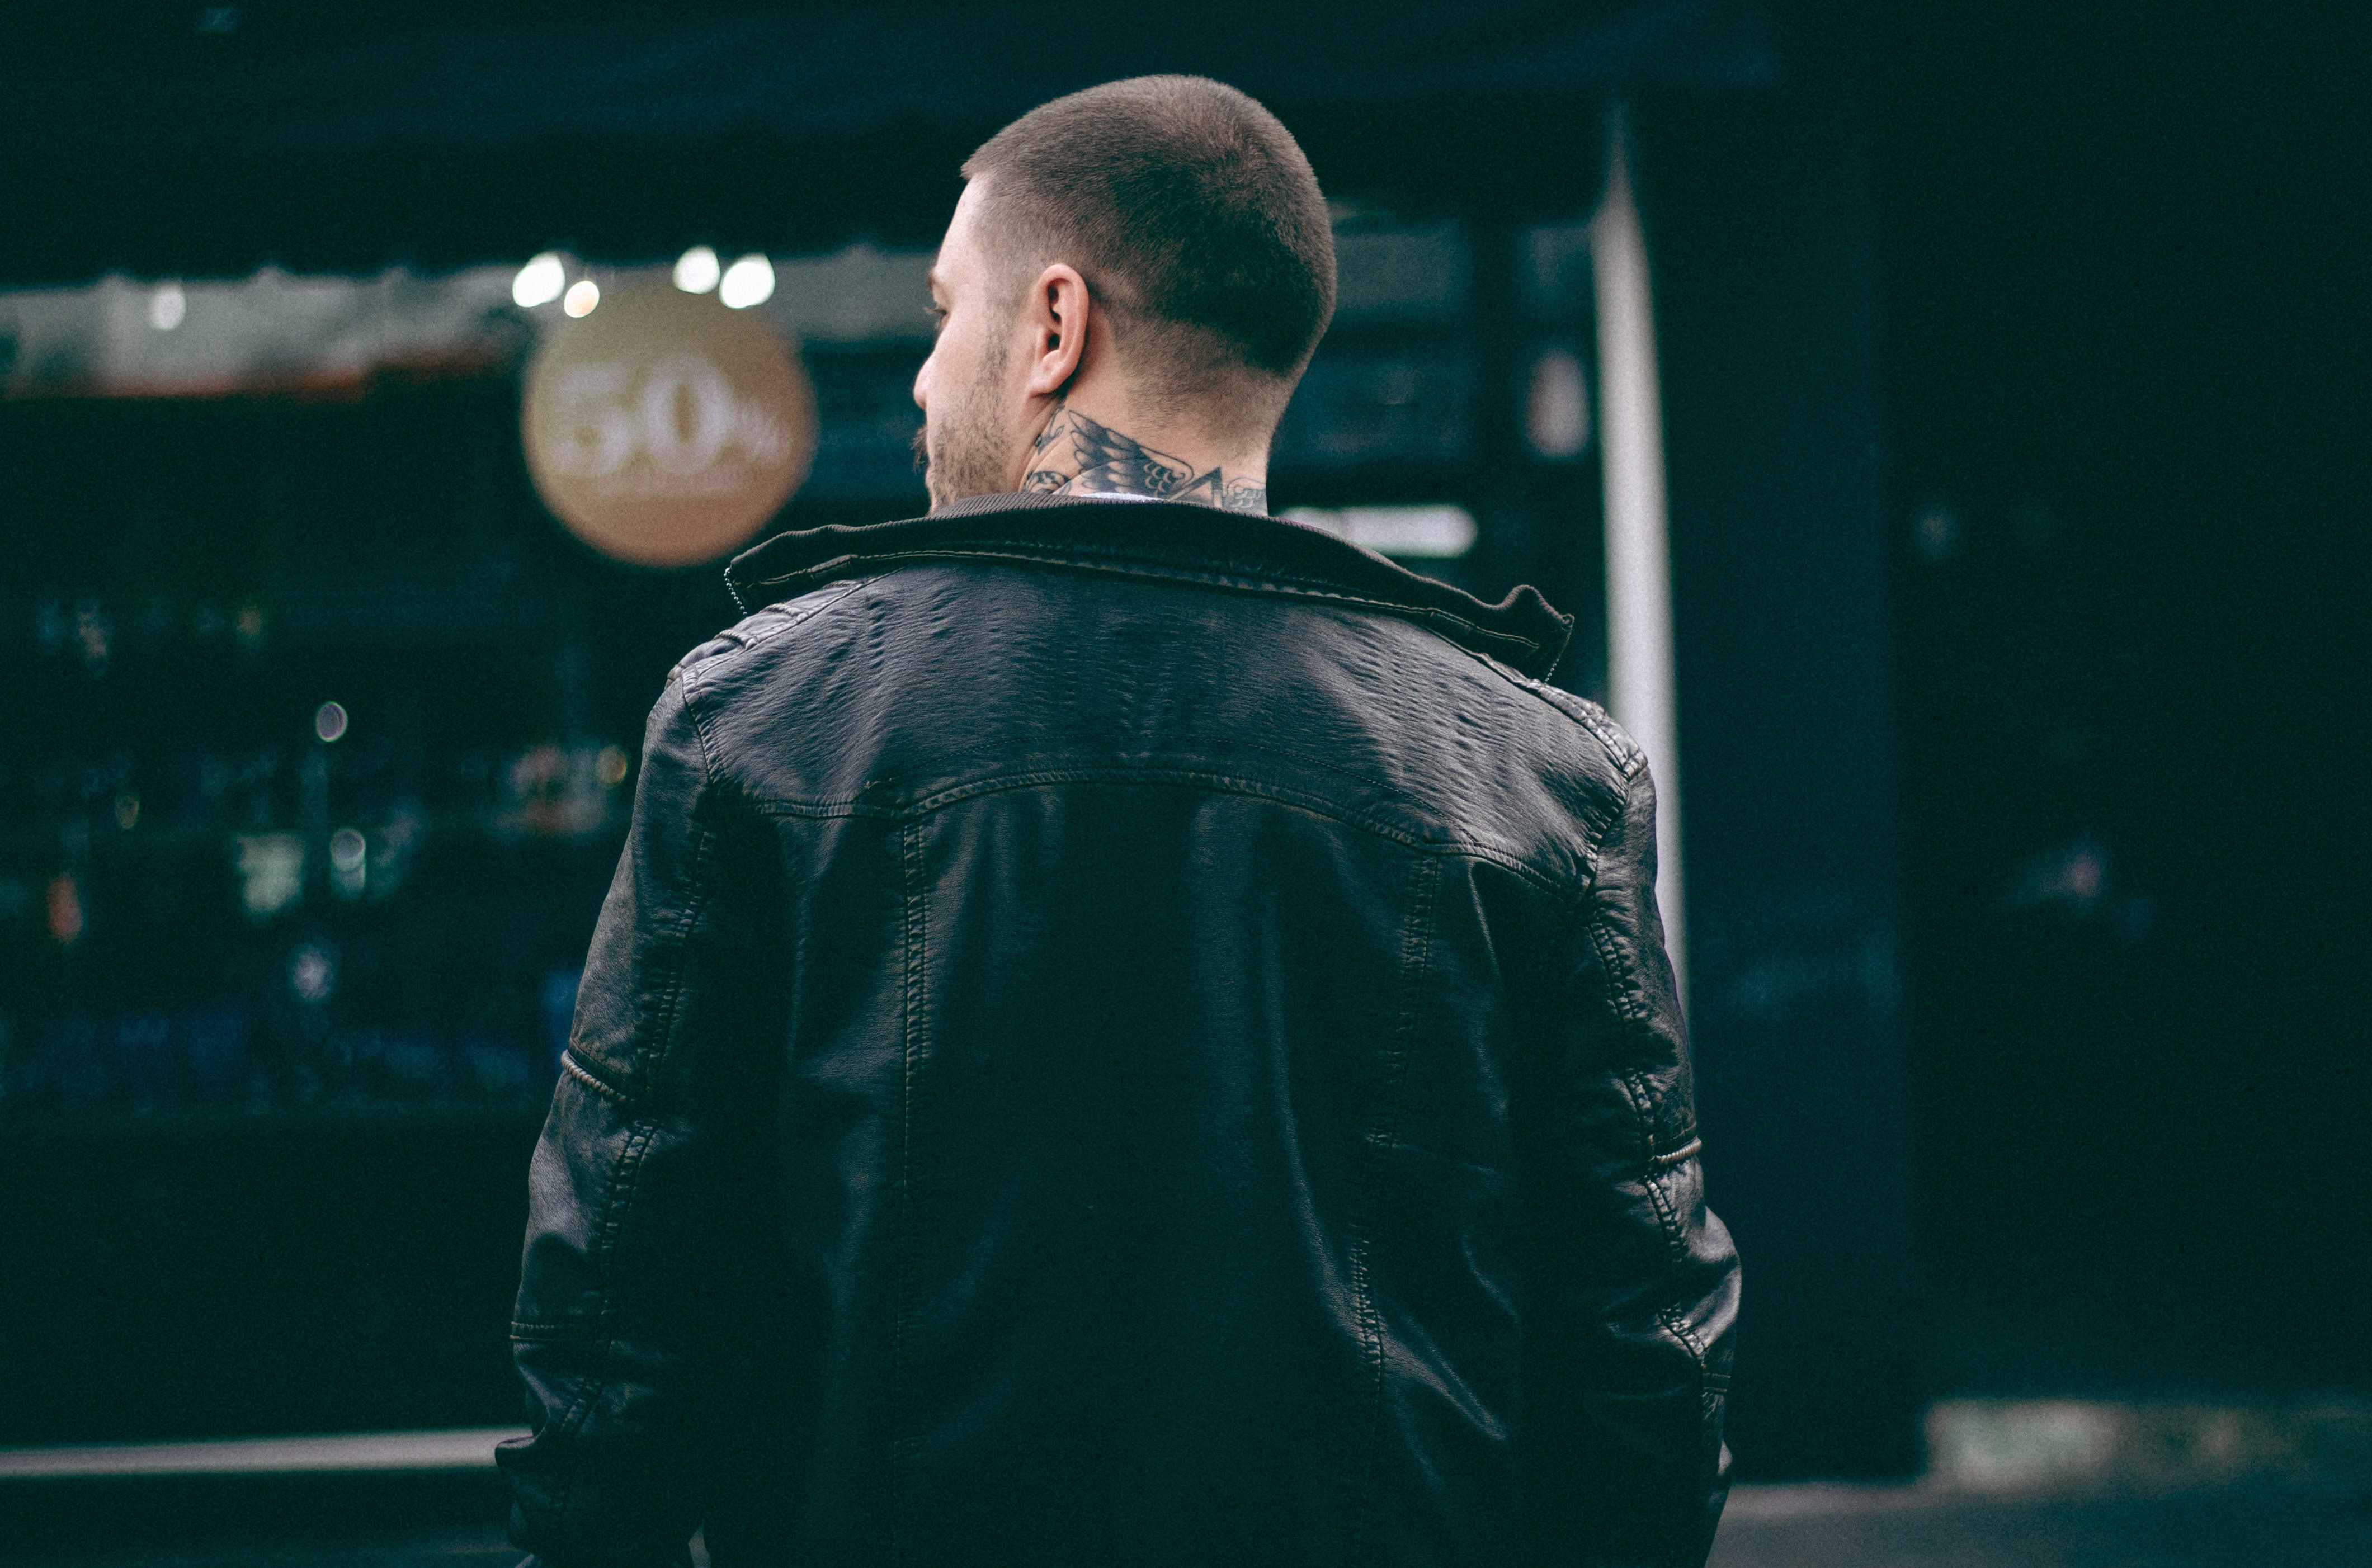 Back view of a man with a tattoo on the neck in a black leather jacket.